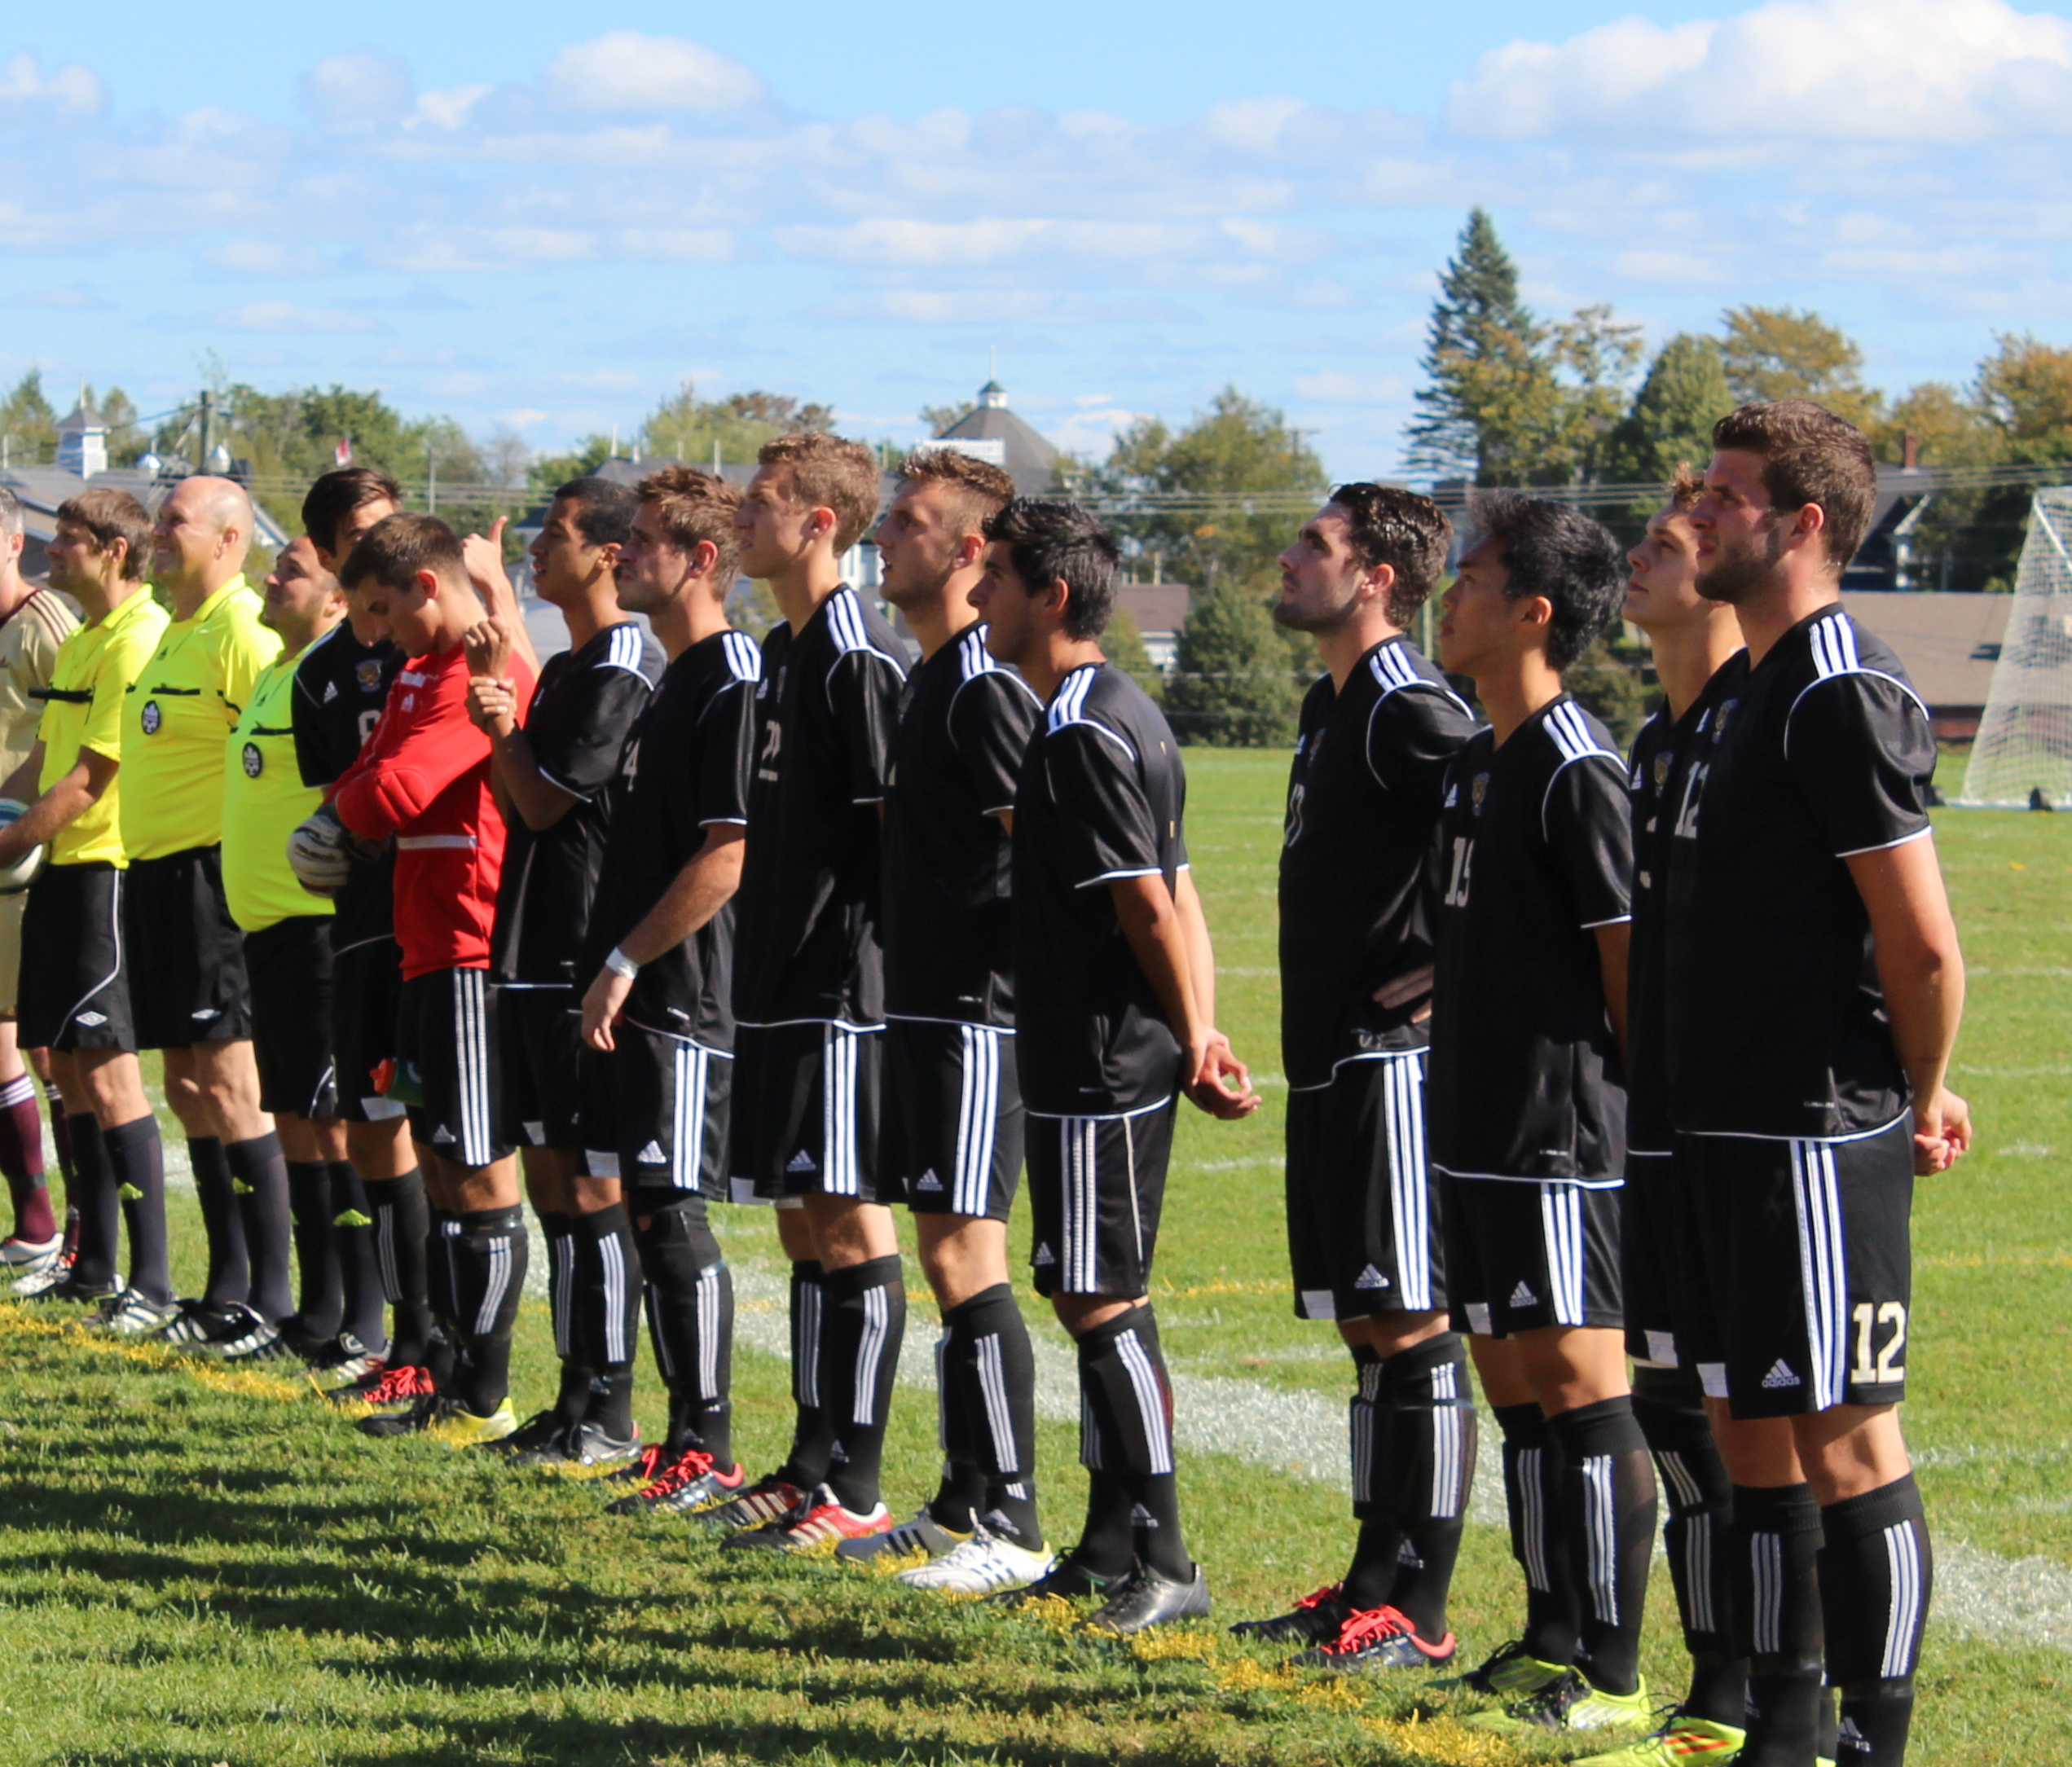 The men's team gets set for a game in Sackville (photo by Samuel Perrier Daigle)